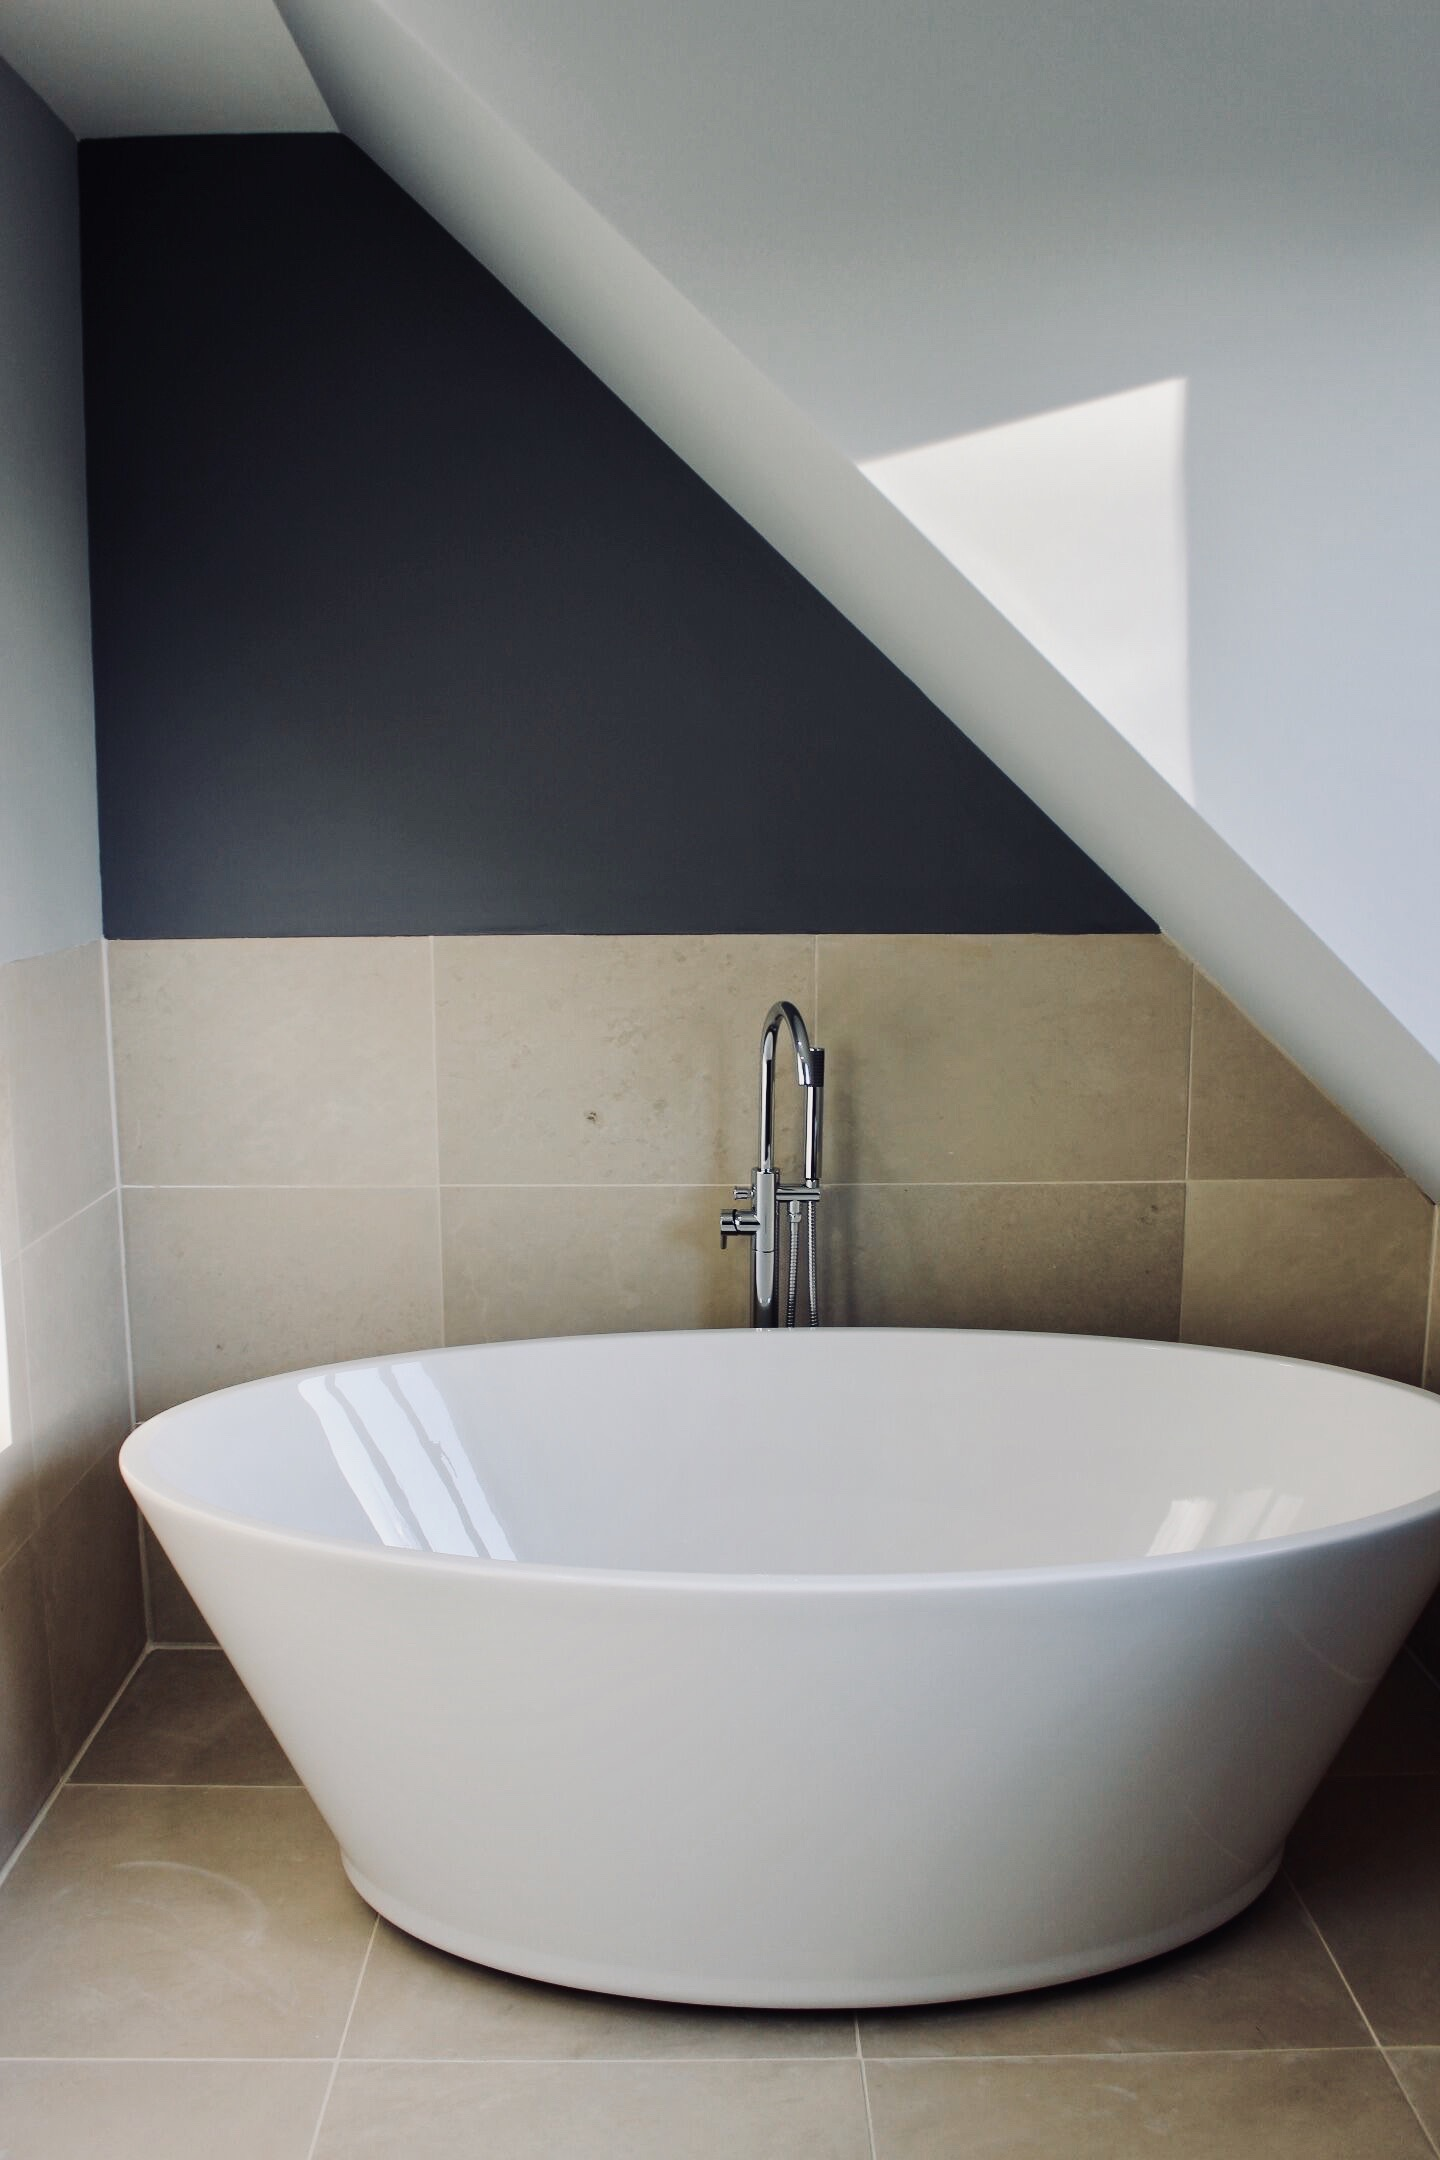 Vessel bowl bath for a sophisticated modern look for an eco home build in West Sussex.